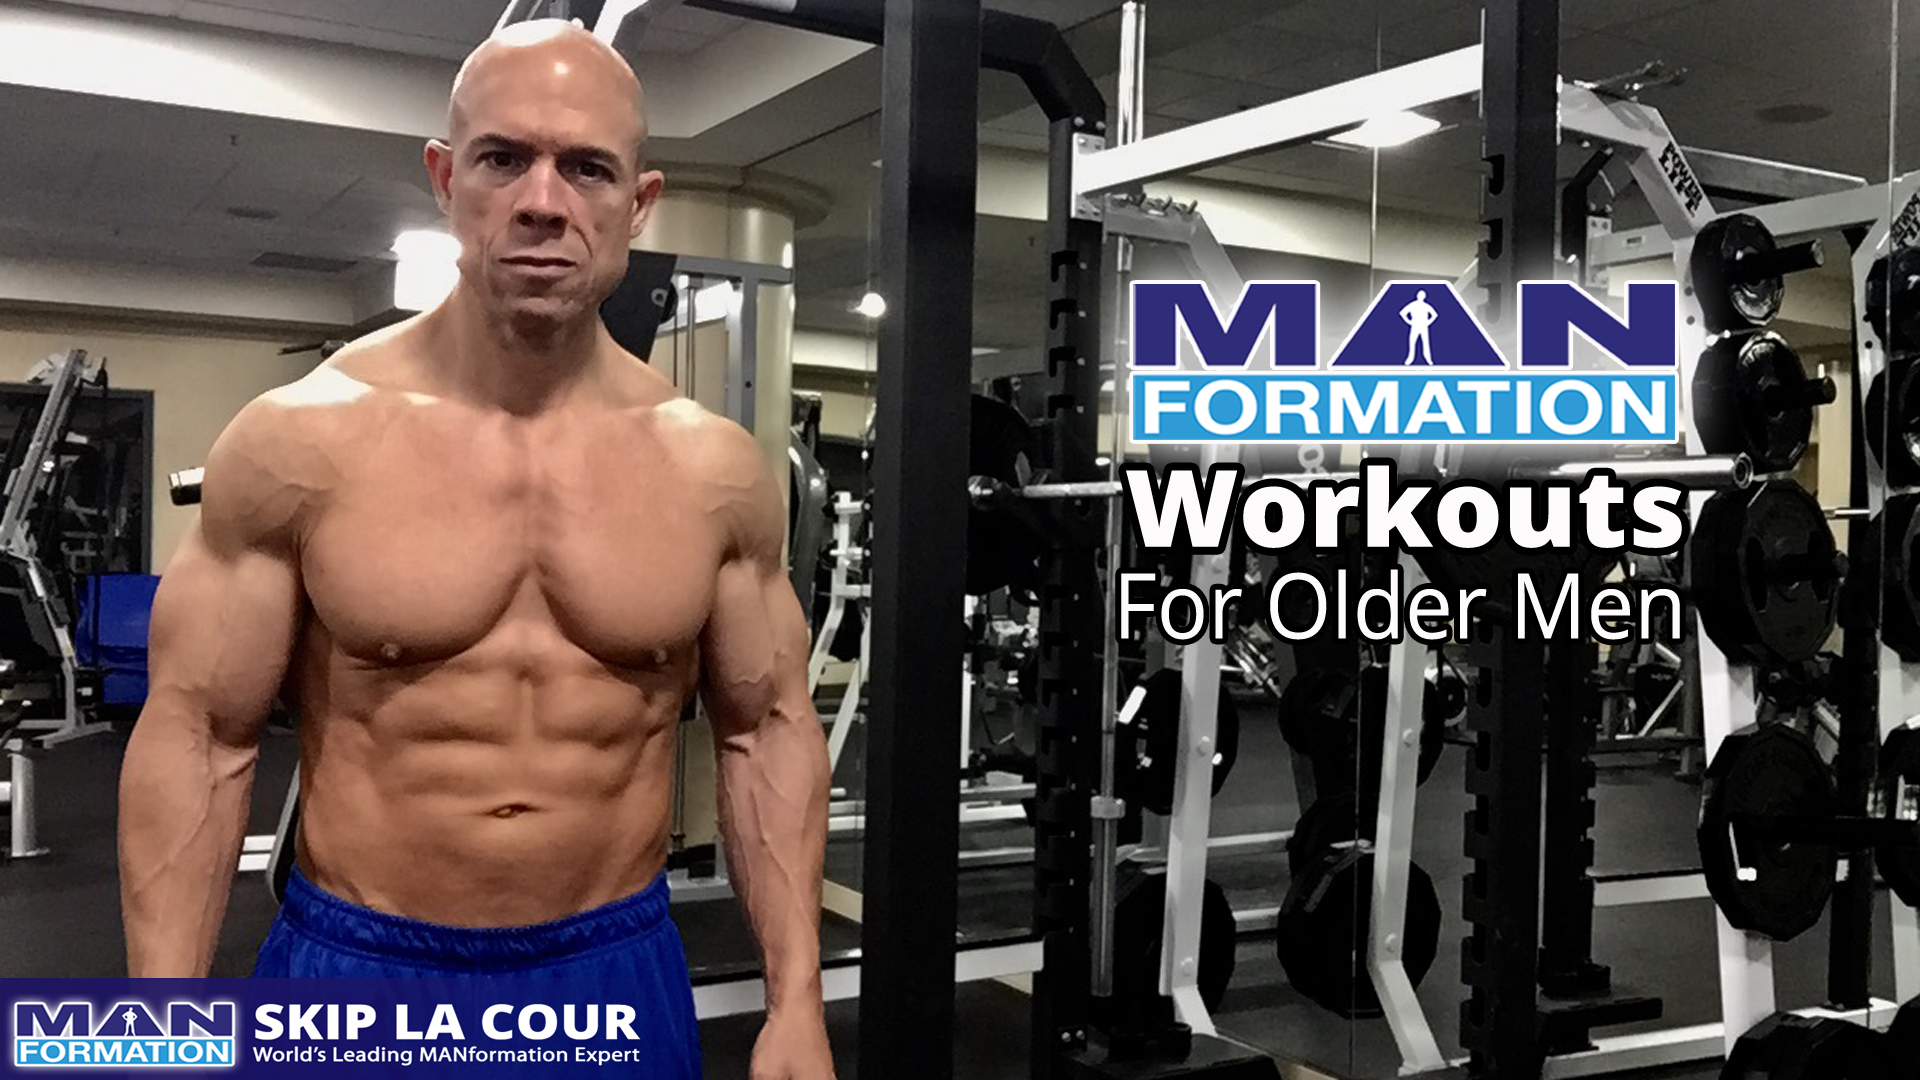 manformation workouts for older men How To Build Bigger Arms   Workouts For Older Men   Biceps, Triceps, and Forearms Workout